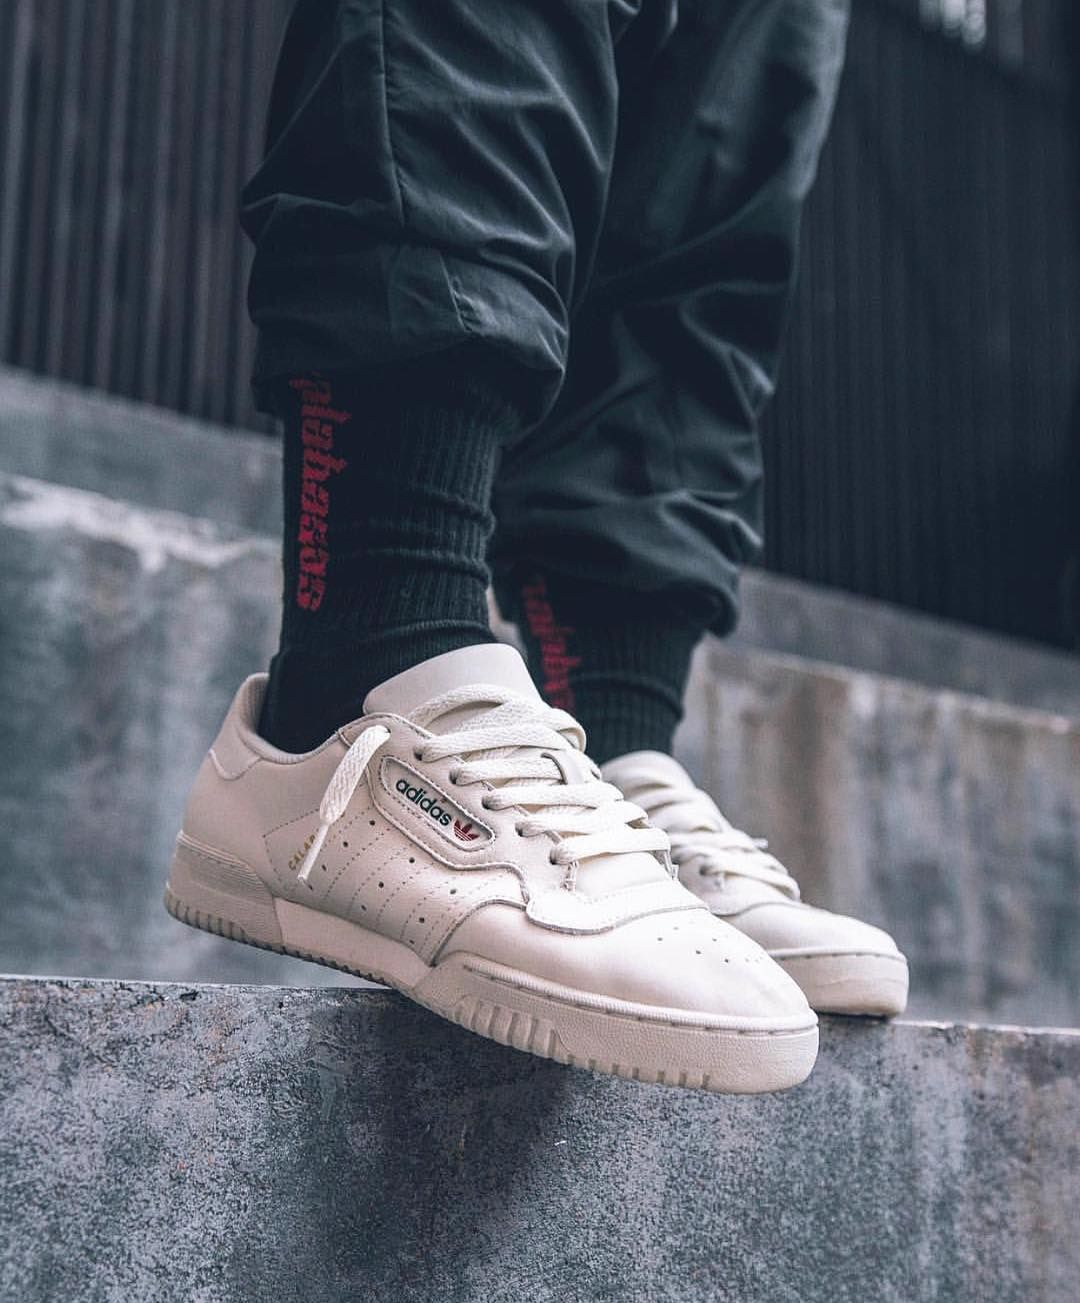 ce8f66a0930a  adidas Yeezy Powerphase  Calabasas by  abitgabriel Use  SADP and   SneakersAddict for